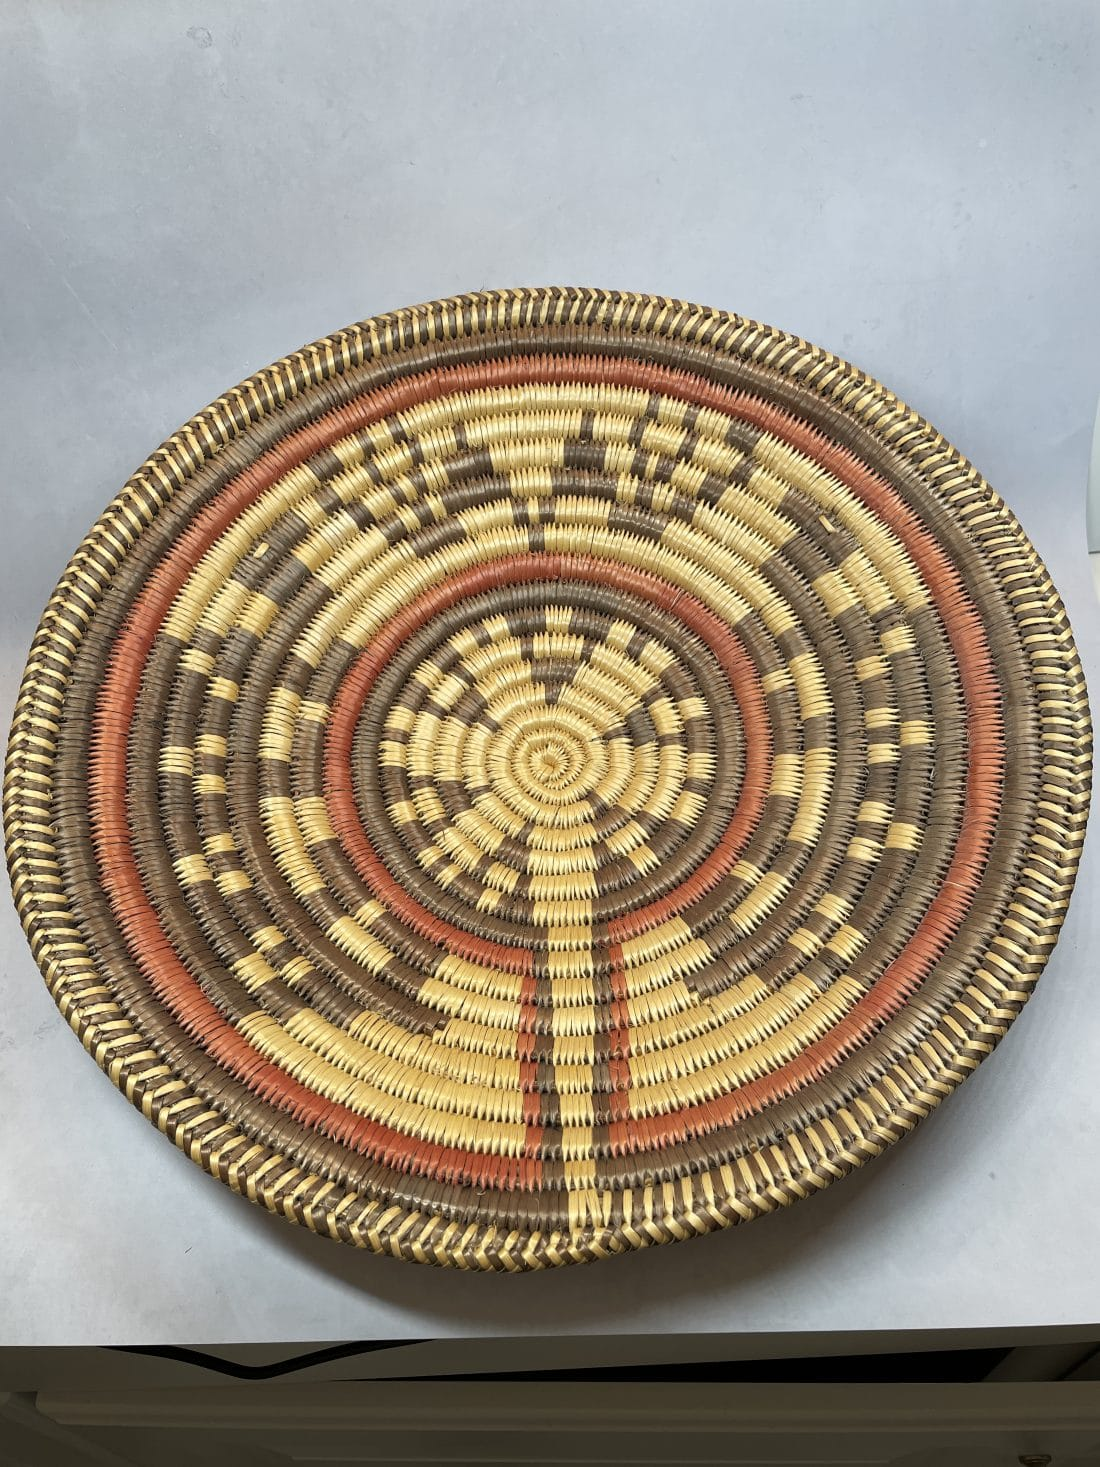 evelyn-cly-navajo-weaved-basket